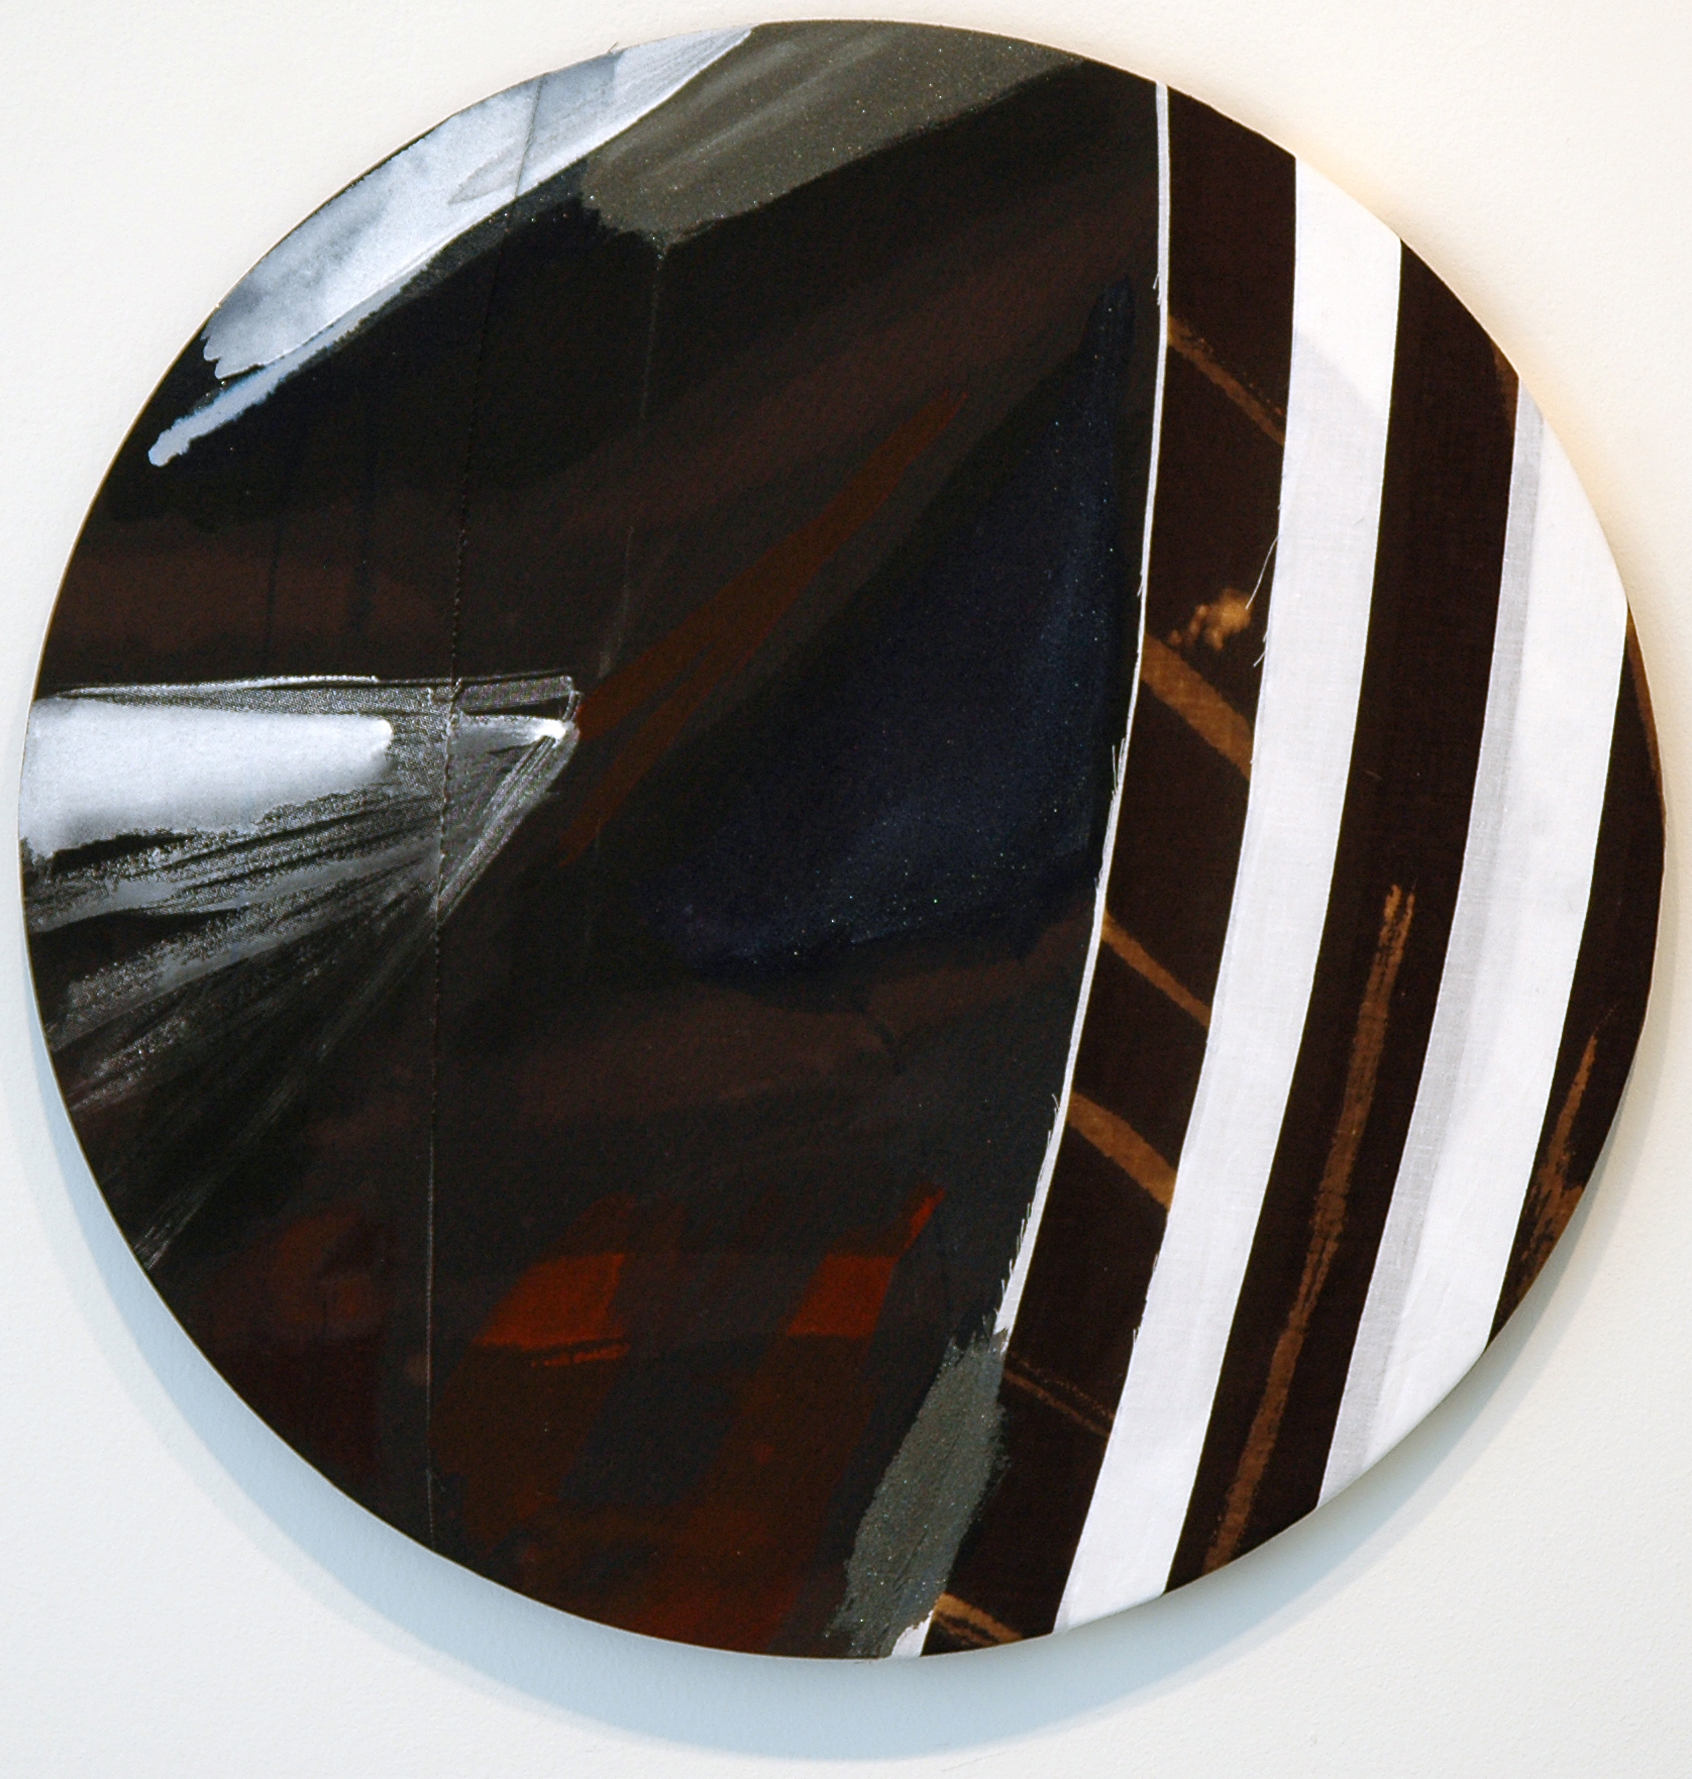 "PAMELA JORDEN   Untitled,  acrylic and bleach on fabric, 18.875"" diameter, 2011"